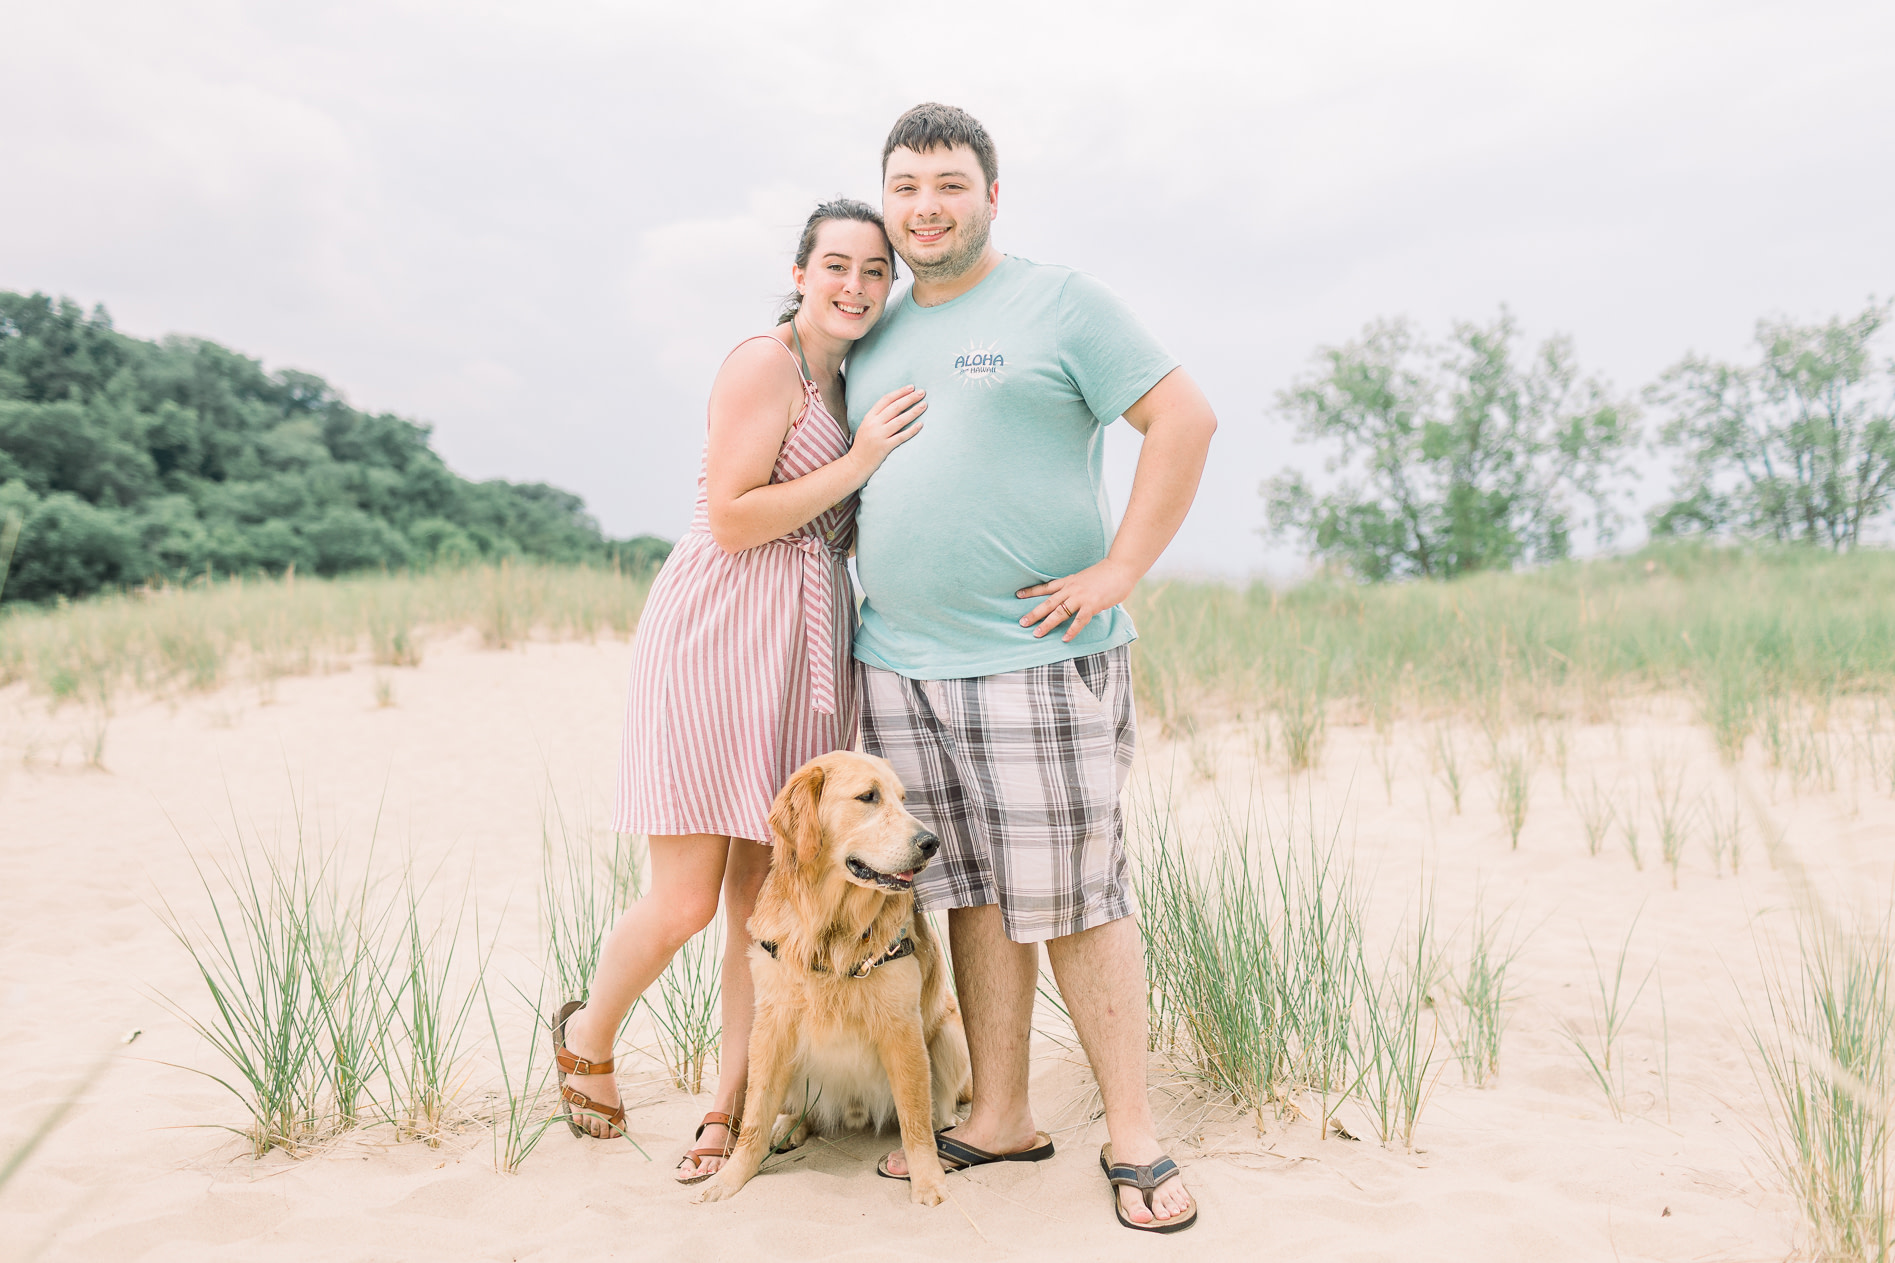 hayley-moore-photography-lake-michigan-engagement-photographer-warren-dunes-state-park-dog-beach